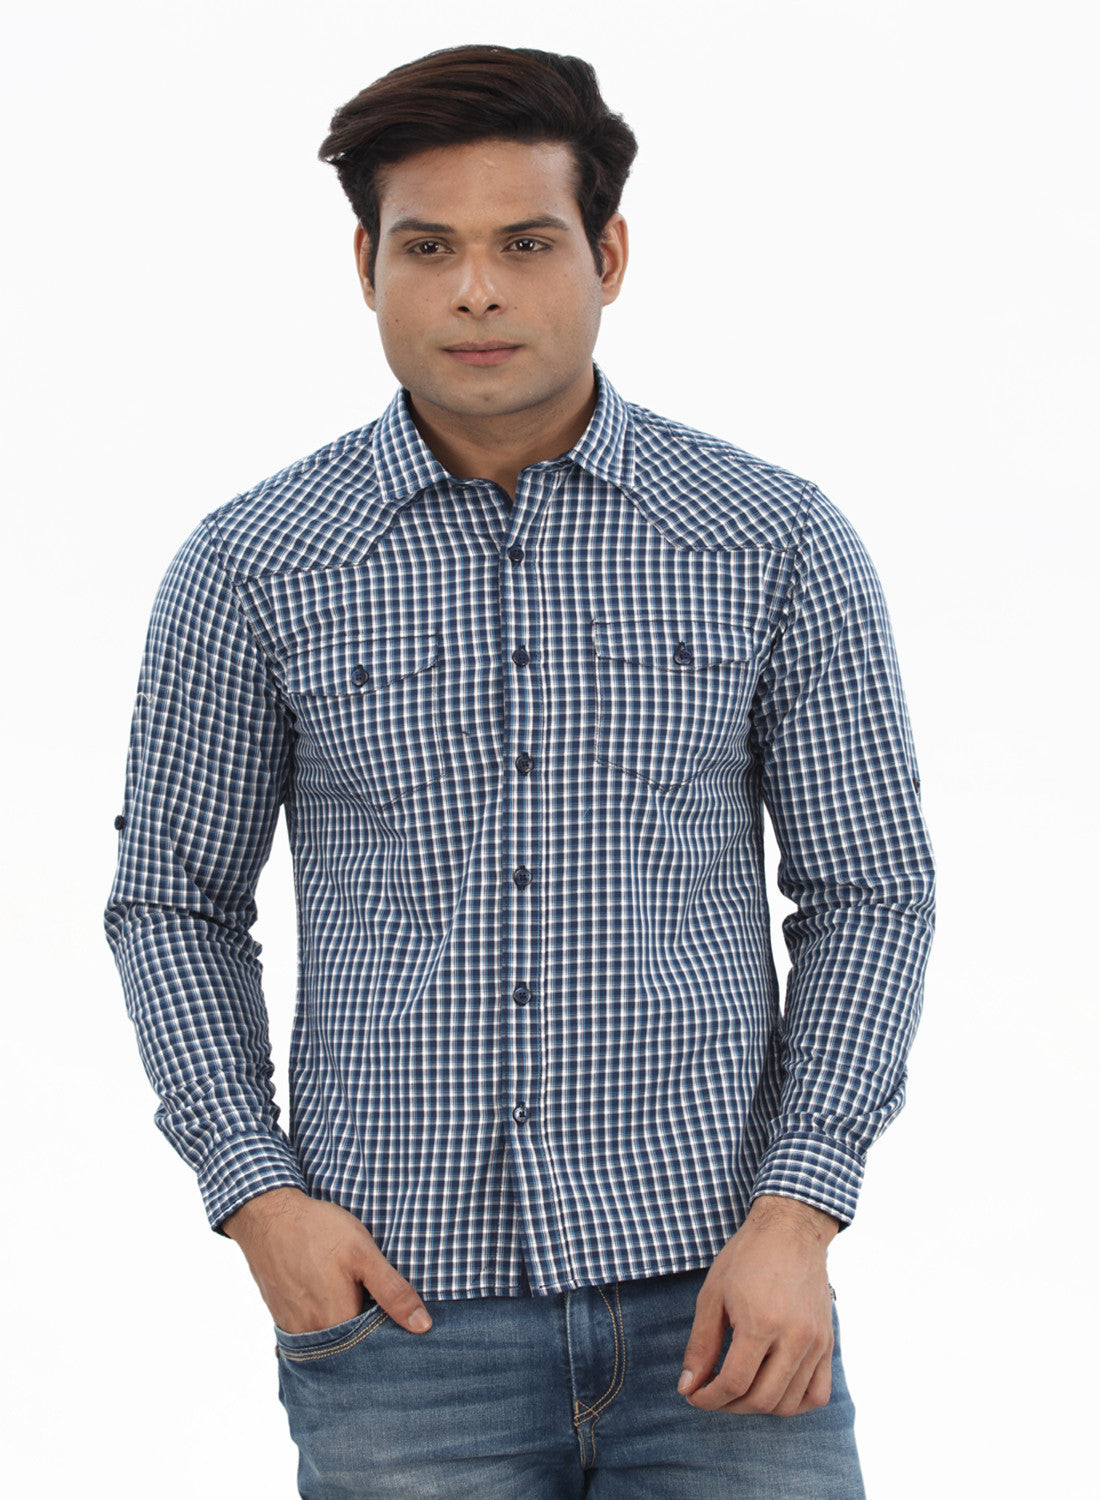 Moustache Slim Fit Mens Shirt-Blue White